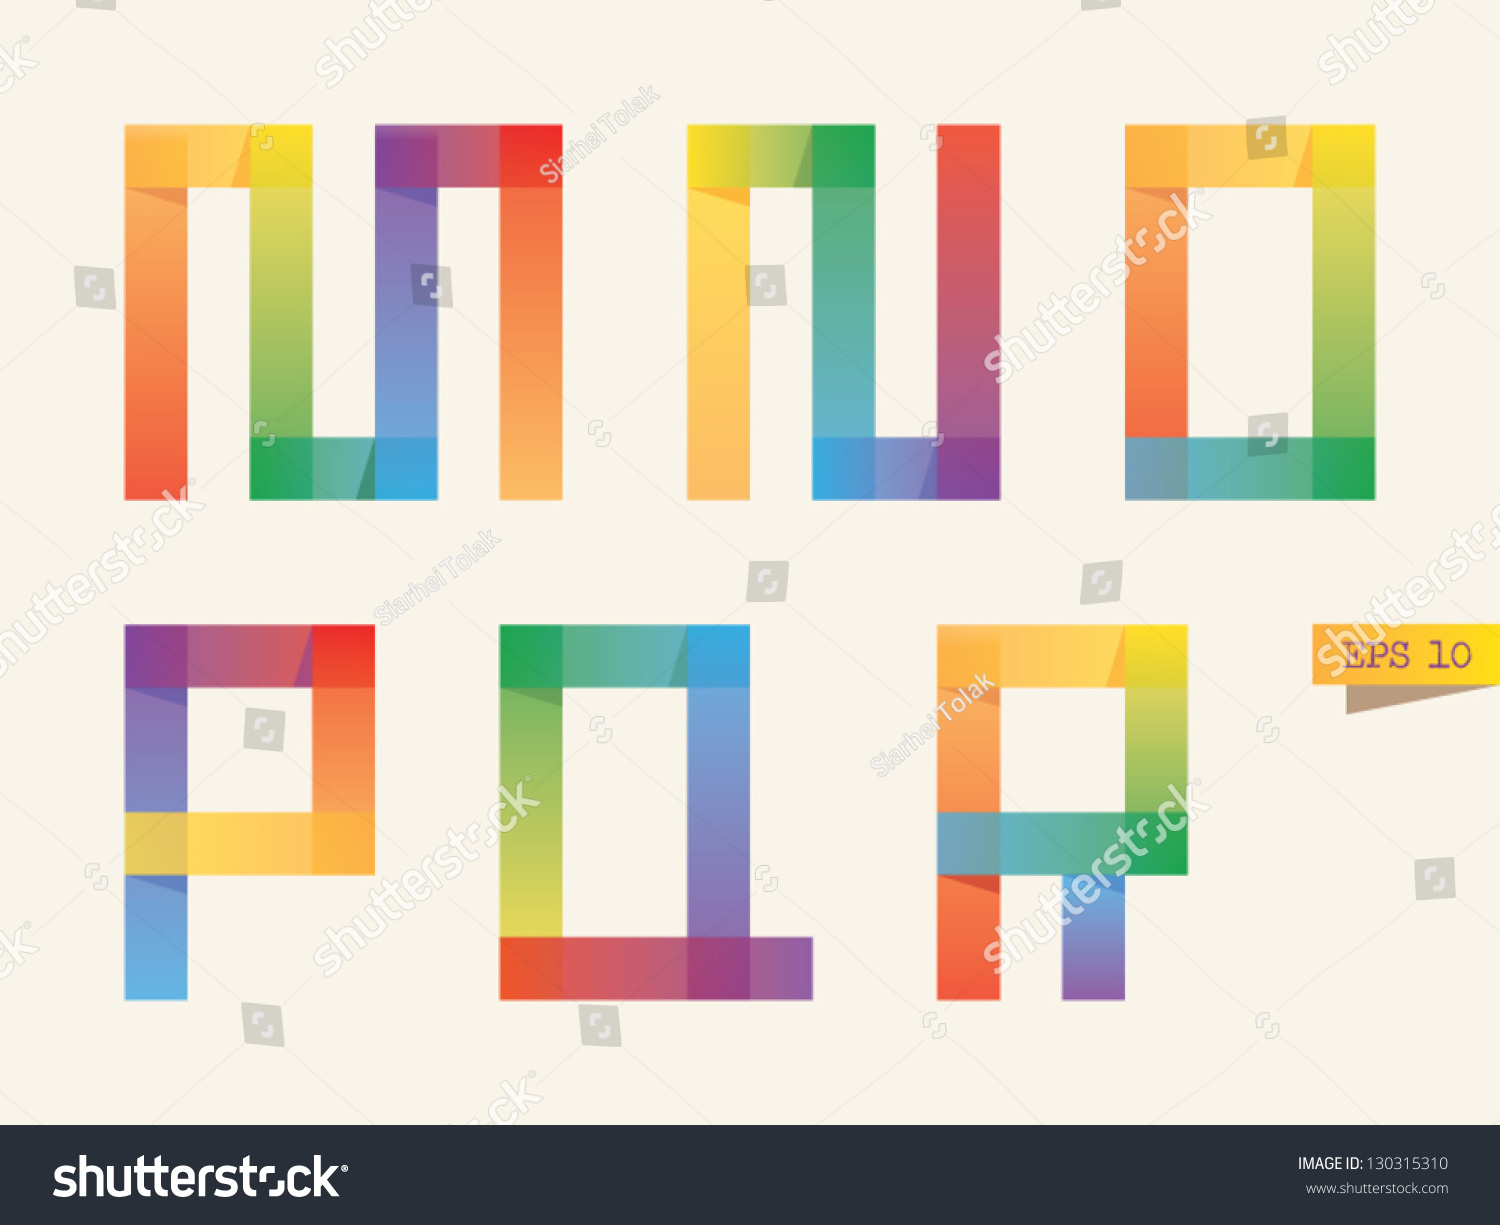 Colored sticky notes alphabet with rainbow colors. M, N, O, P,